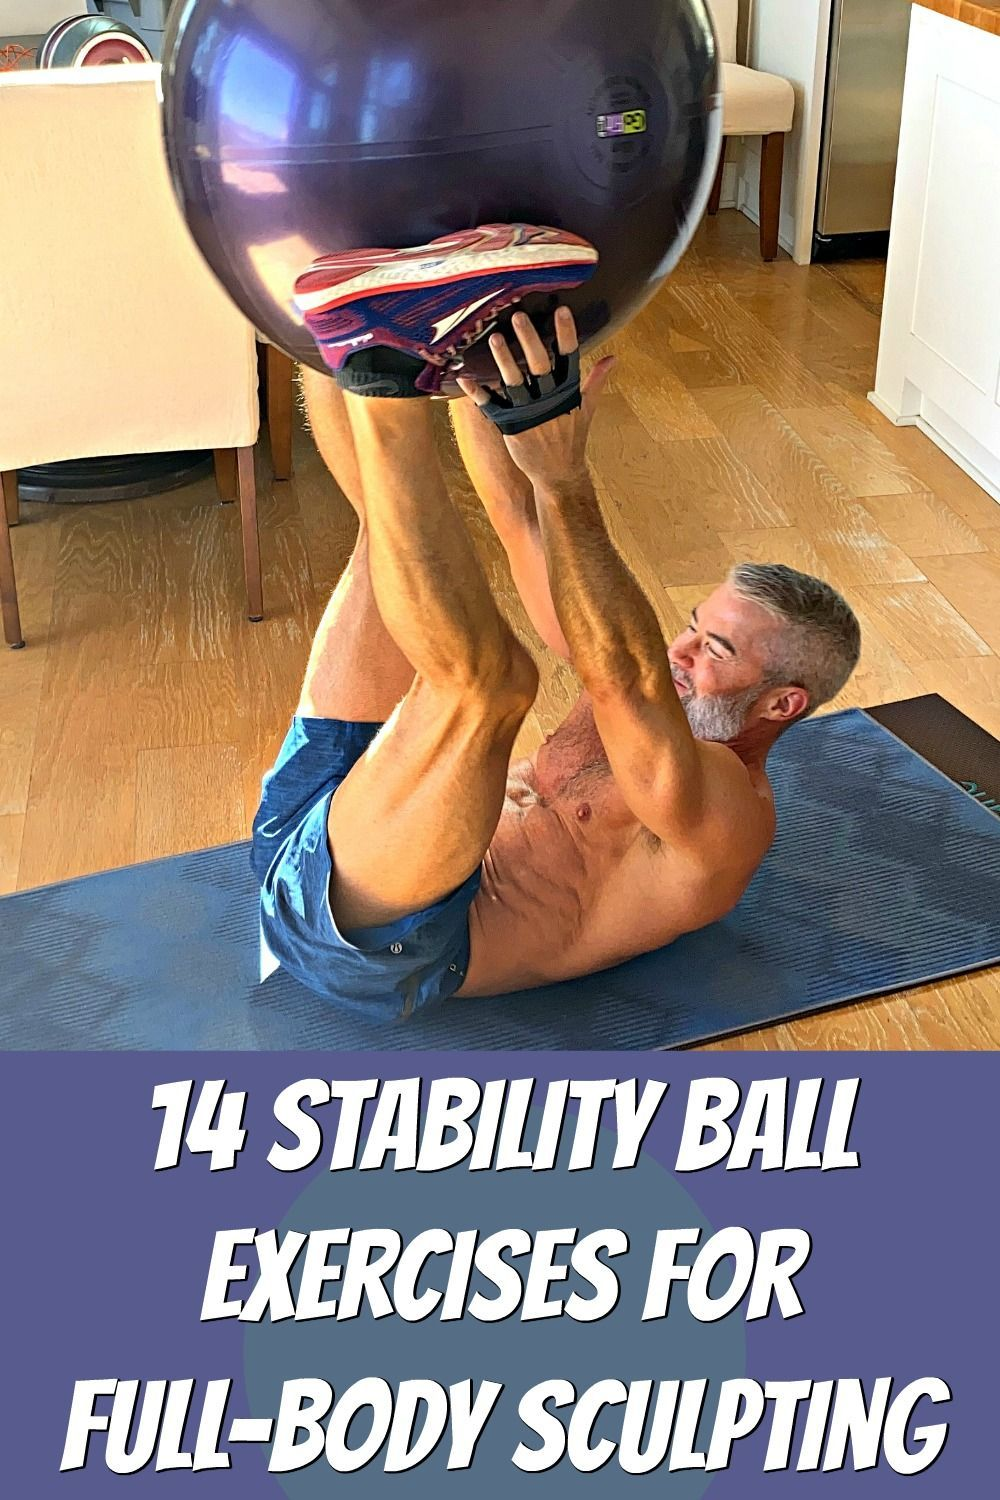 Click-through for 14 fun stability ball exercises that can sculpt your entire body. A complete worko...